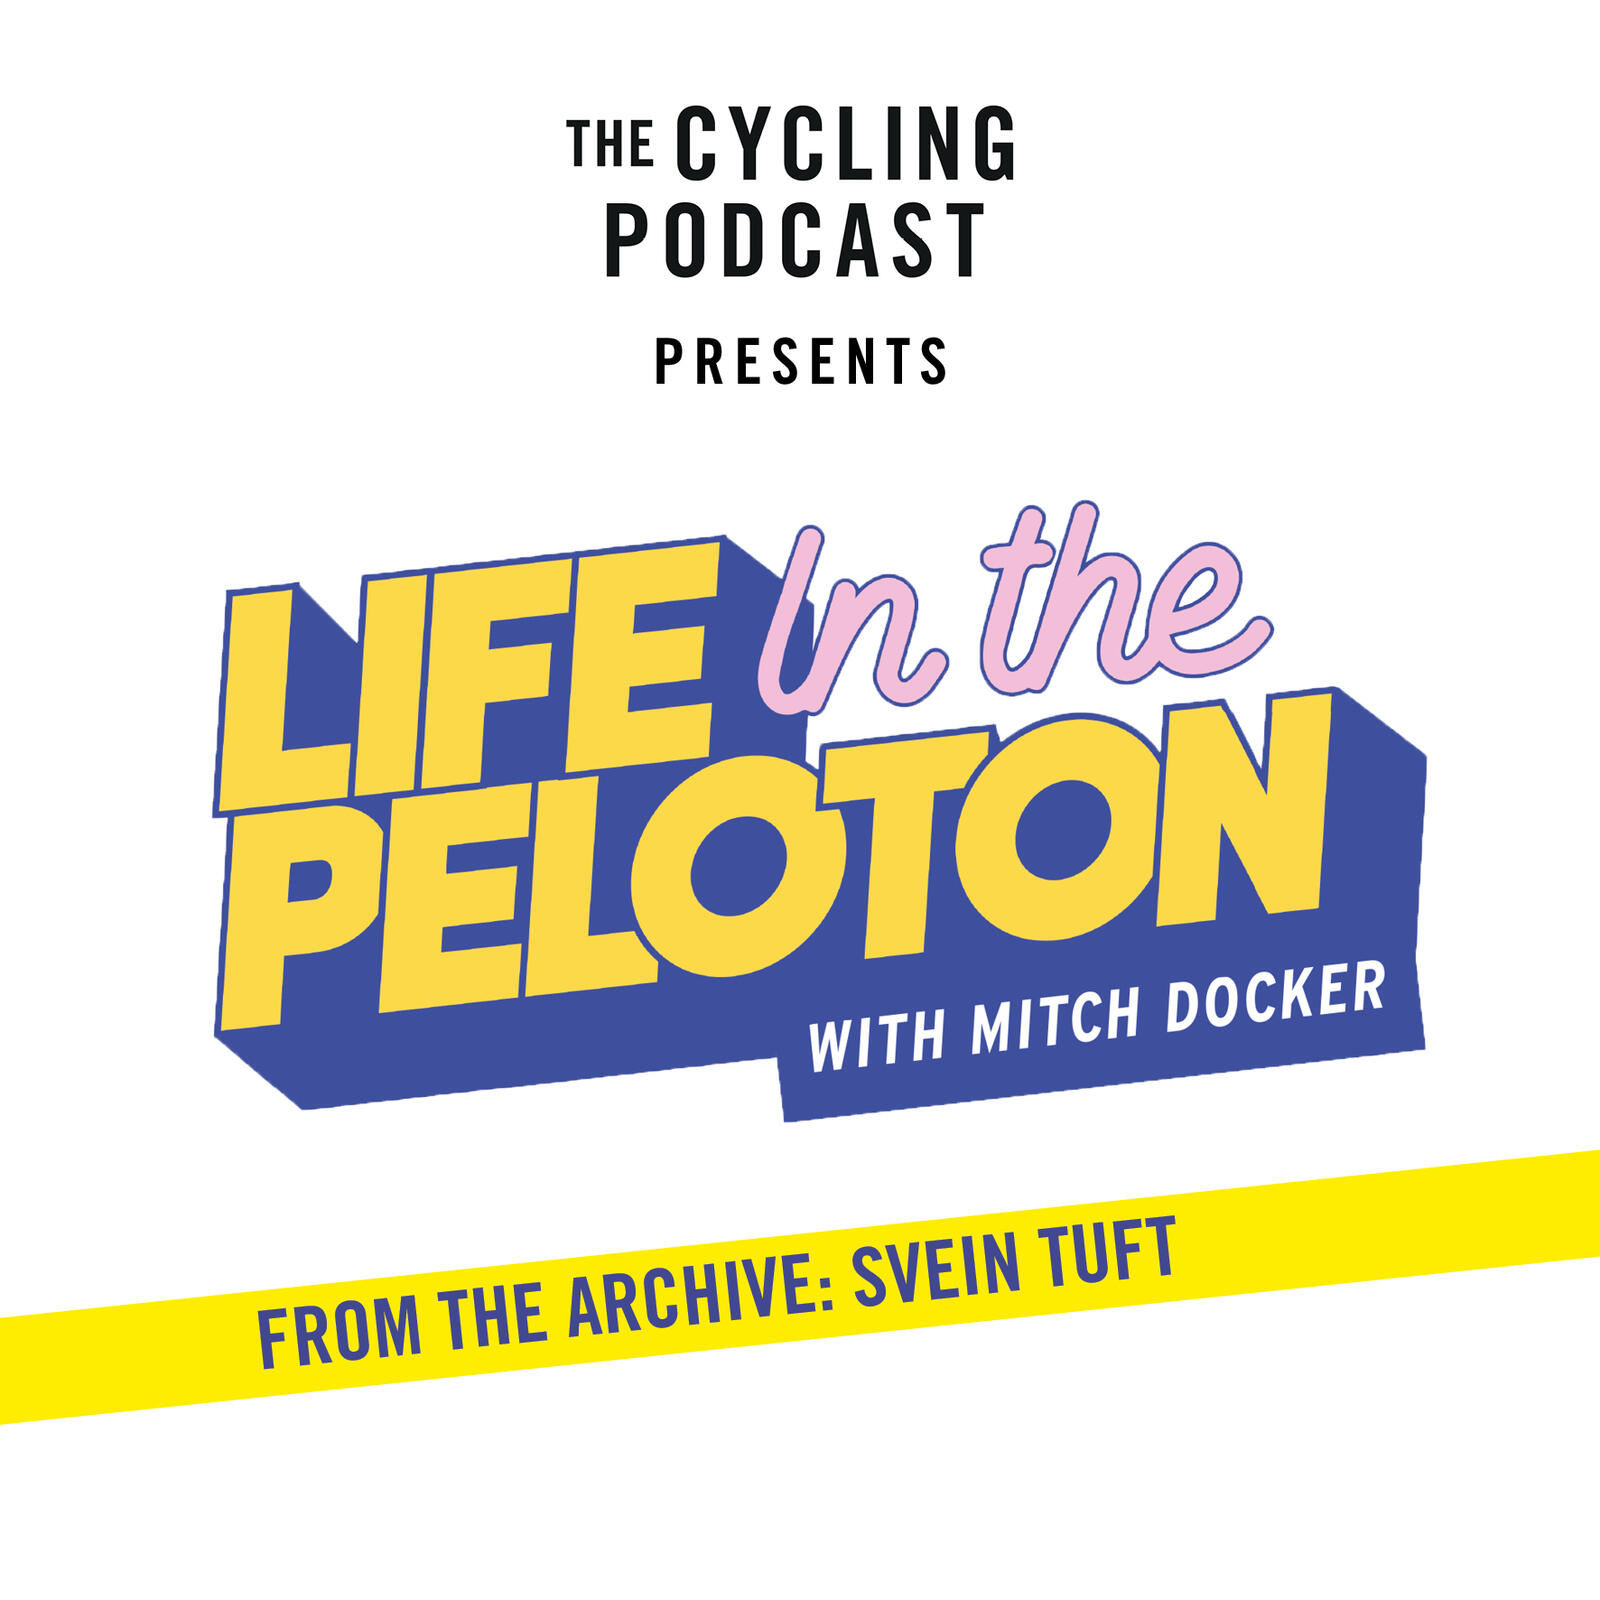 10: From the Life in the Peloton archive: Svein Tuft